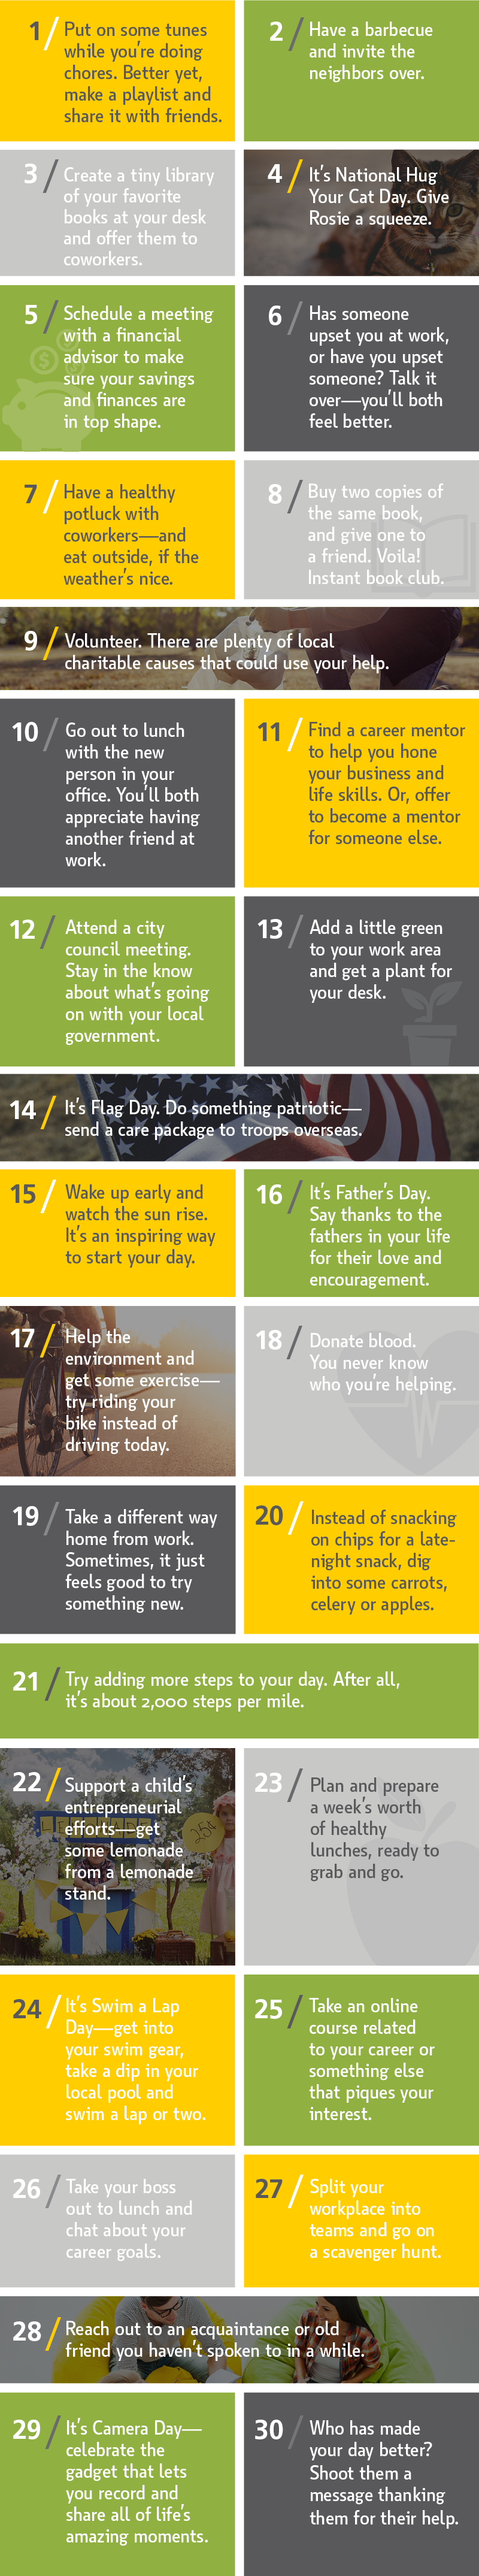 Employee Wellbeing Month June Calendar Infographic